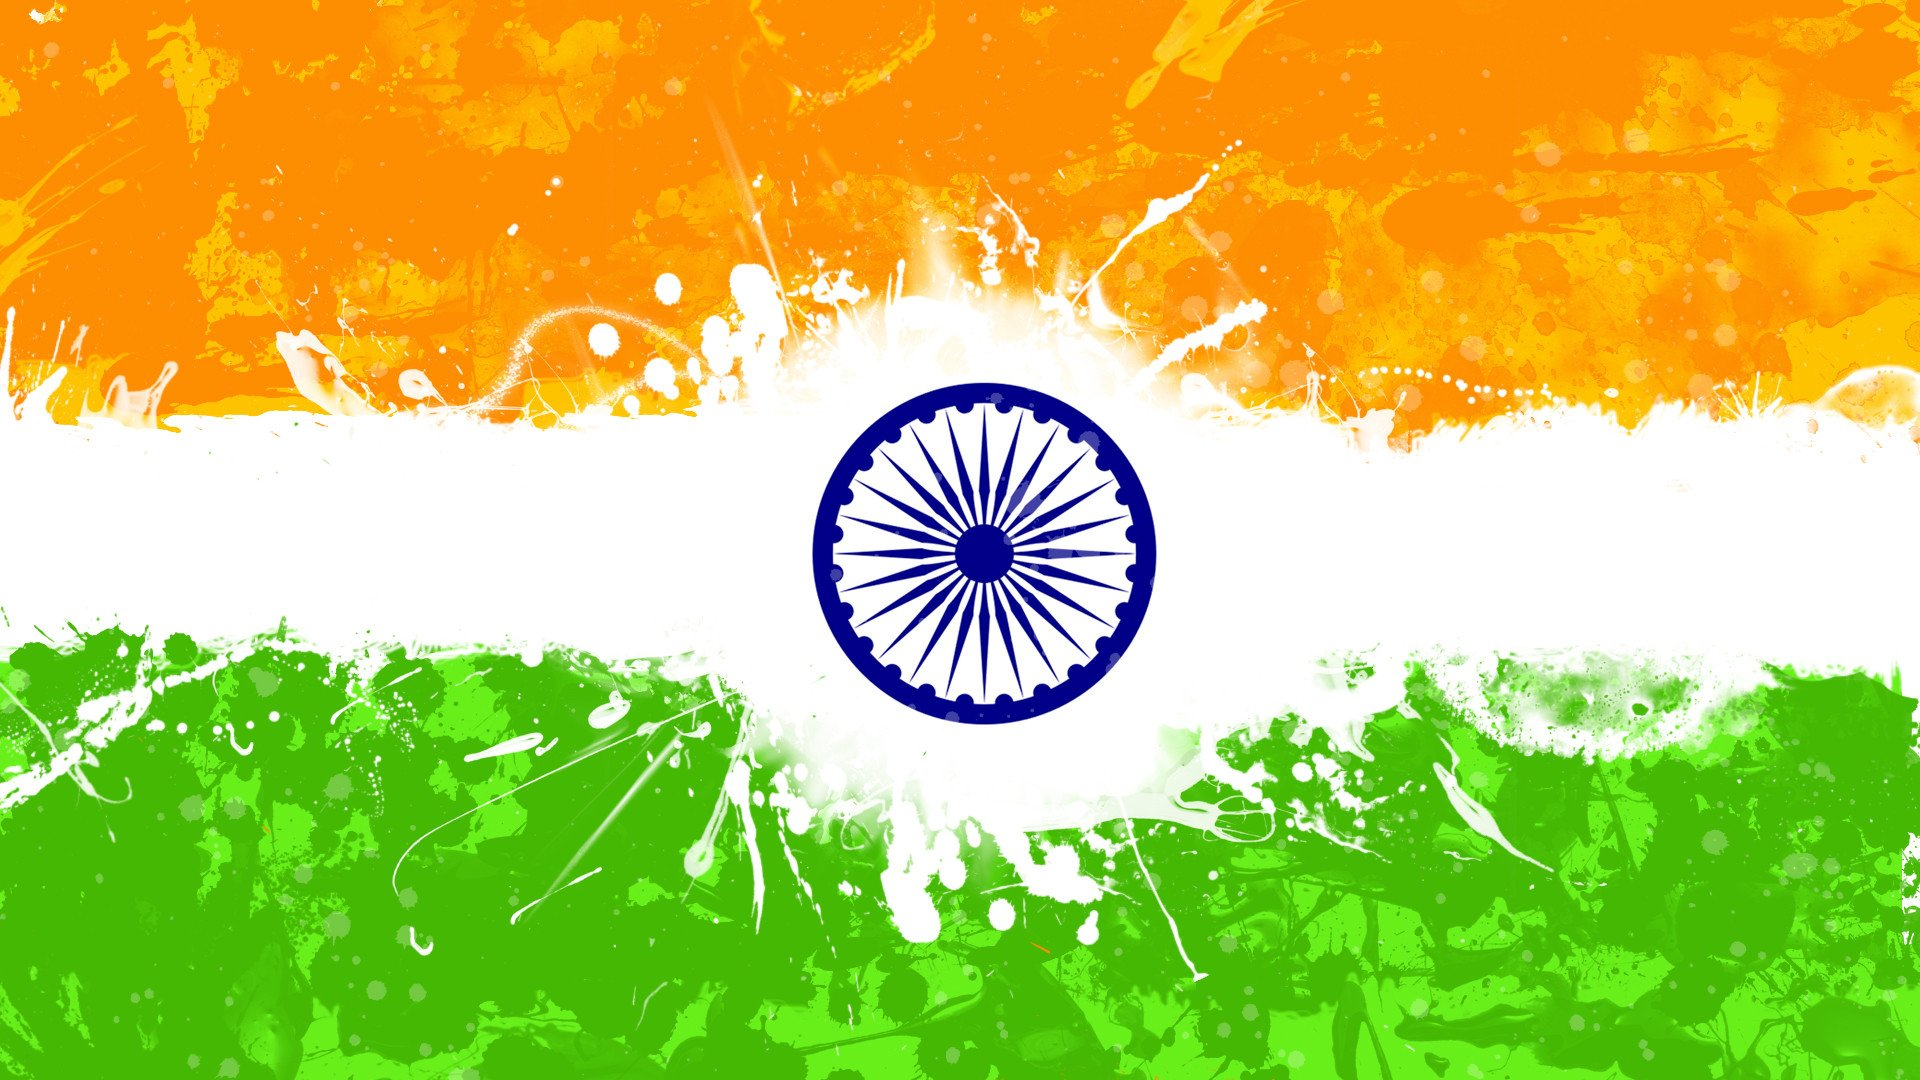 resoloution 1280x720 indian flag - photo #15